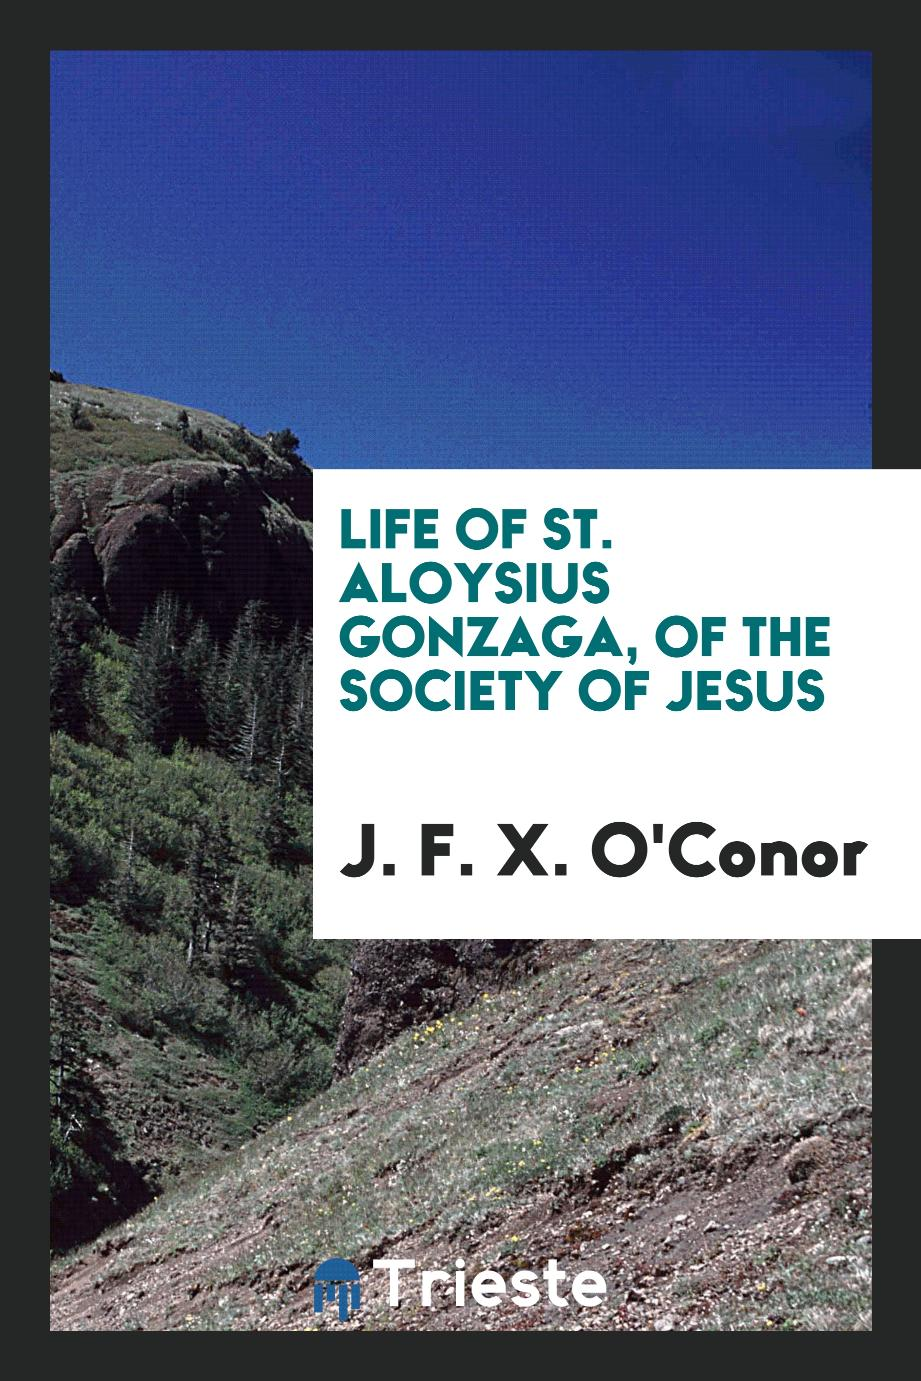 Life of St. Aloysius Gonzaga, of the Society of Jesus